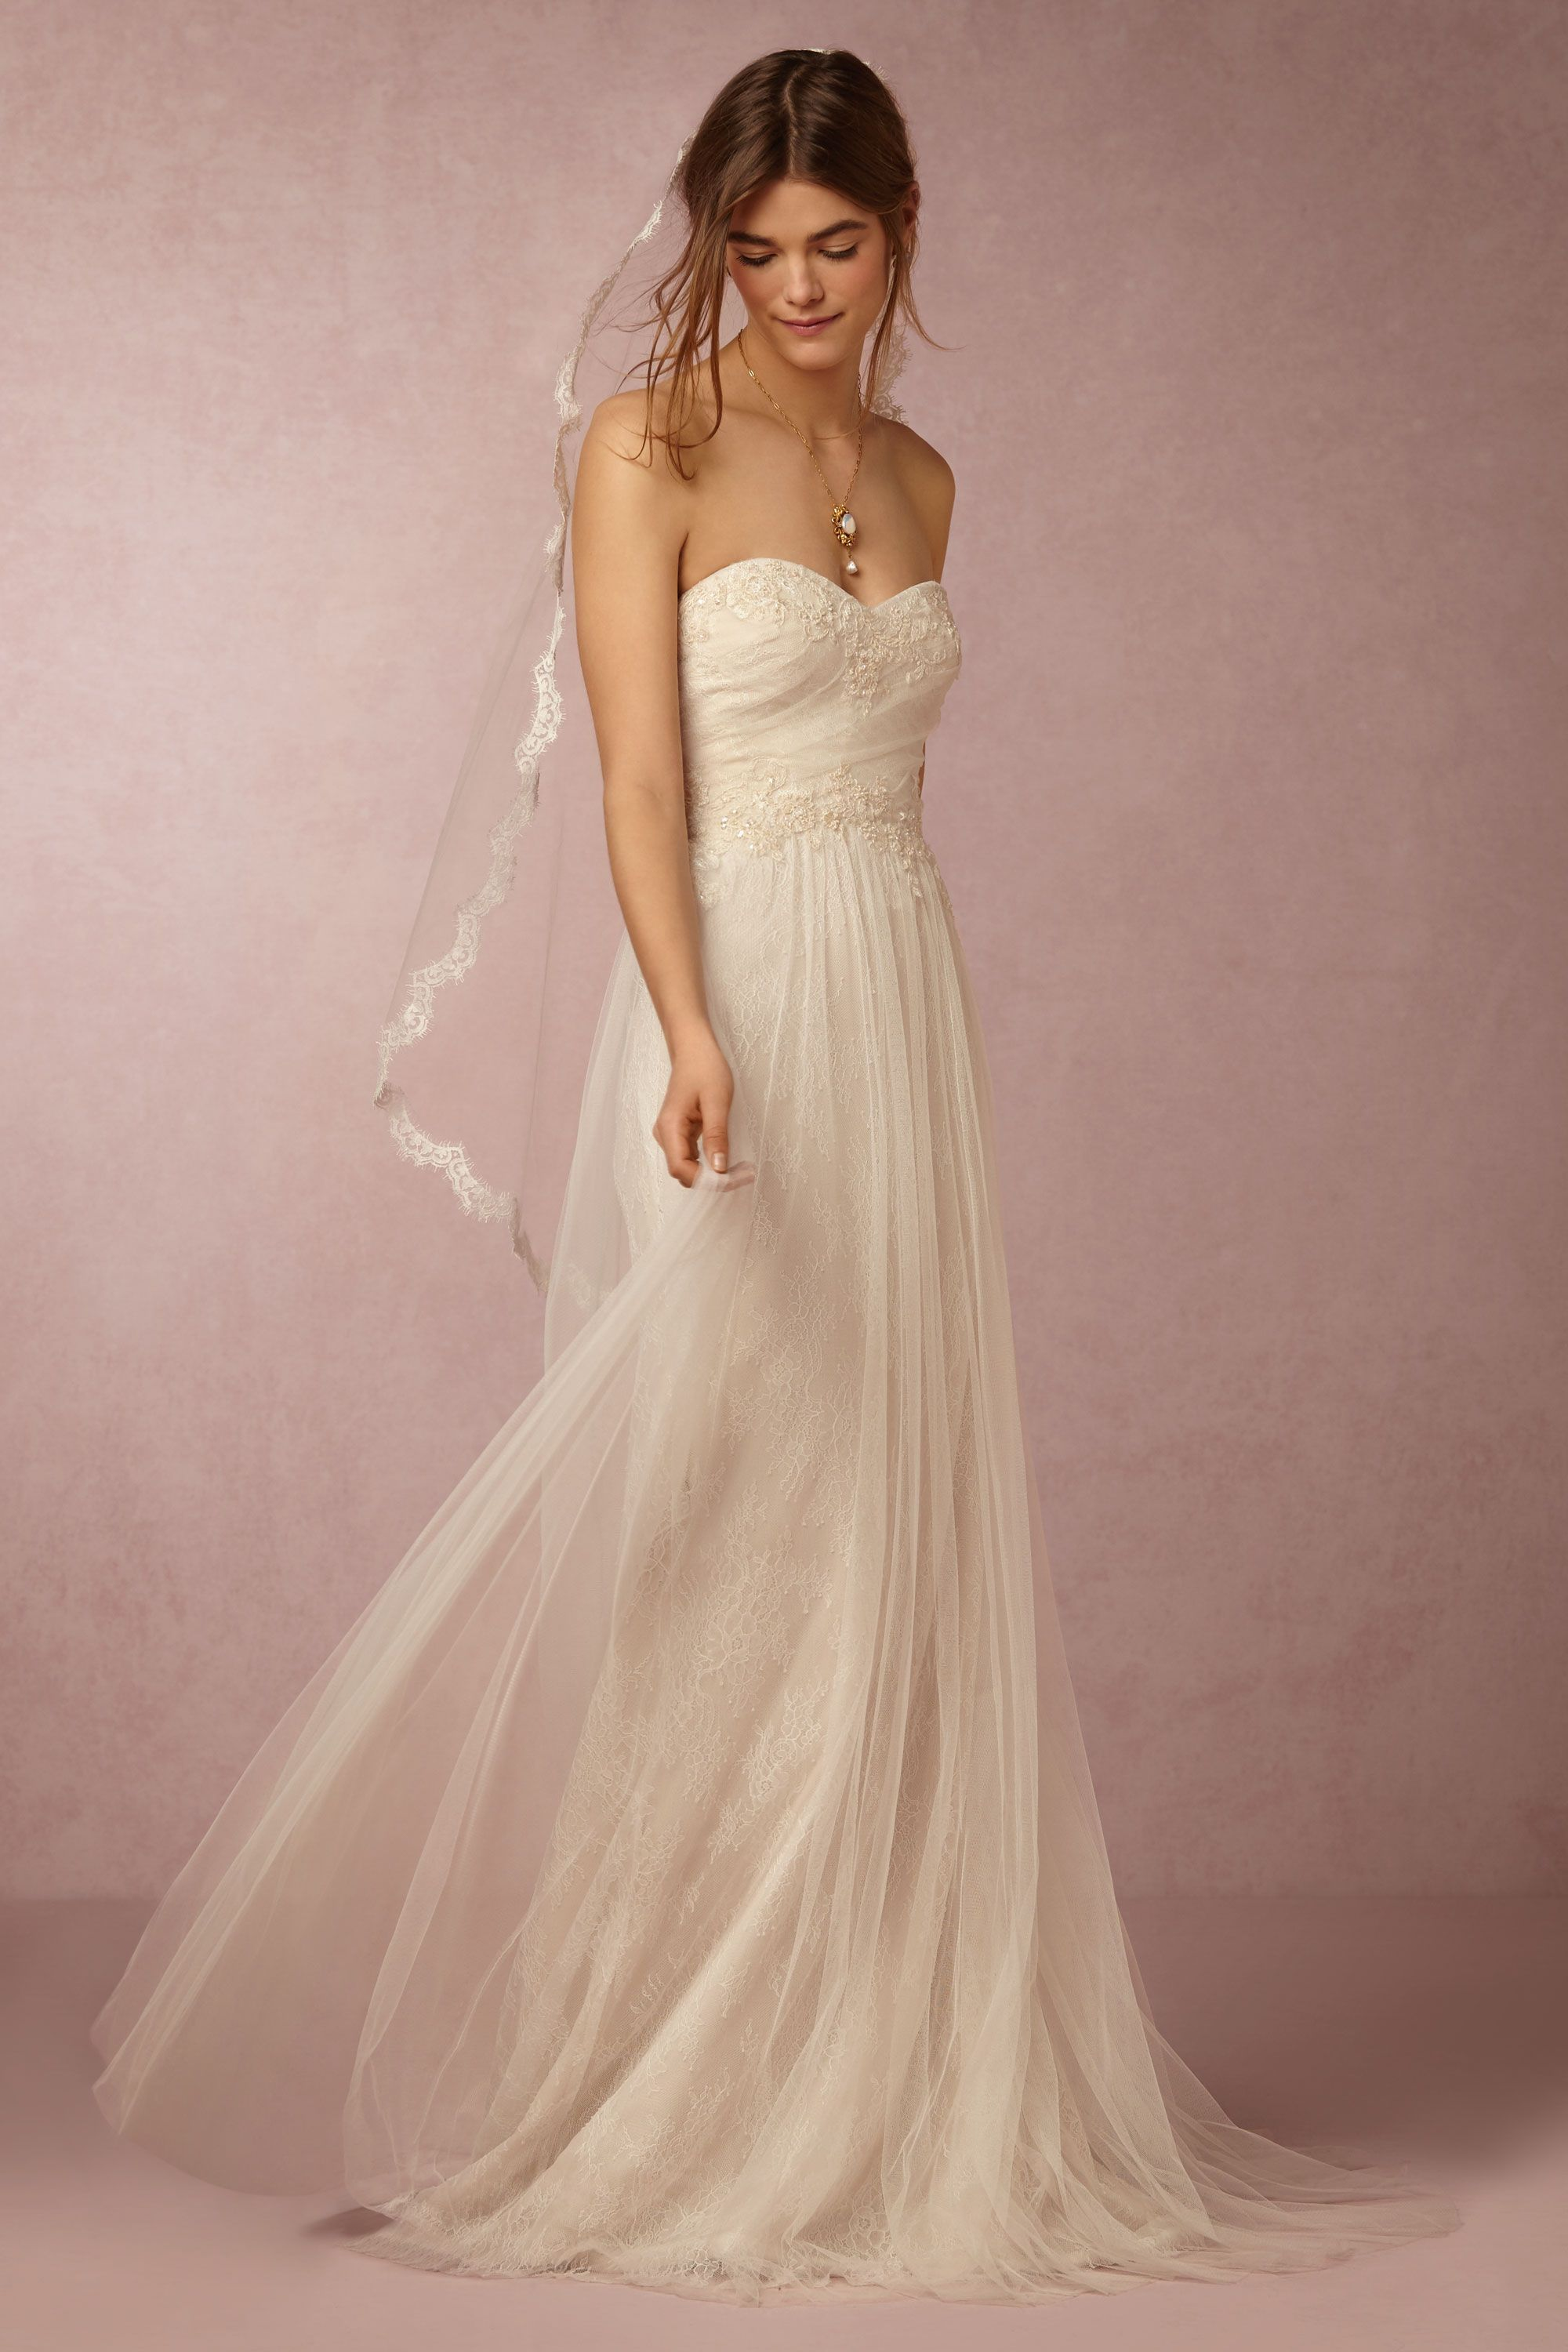 BHLDN Lilou Gown in Sale at BHLDN | THE dress | Pinterest | Gowns ...